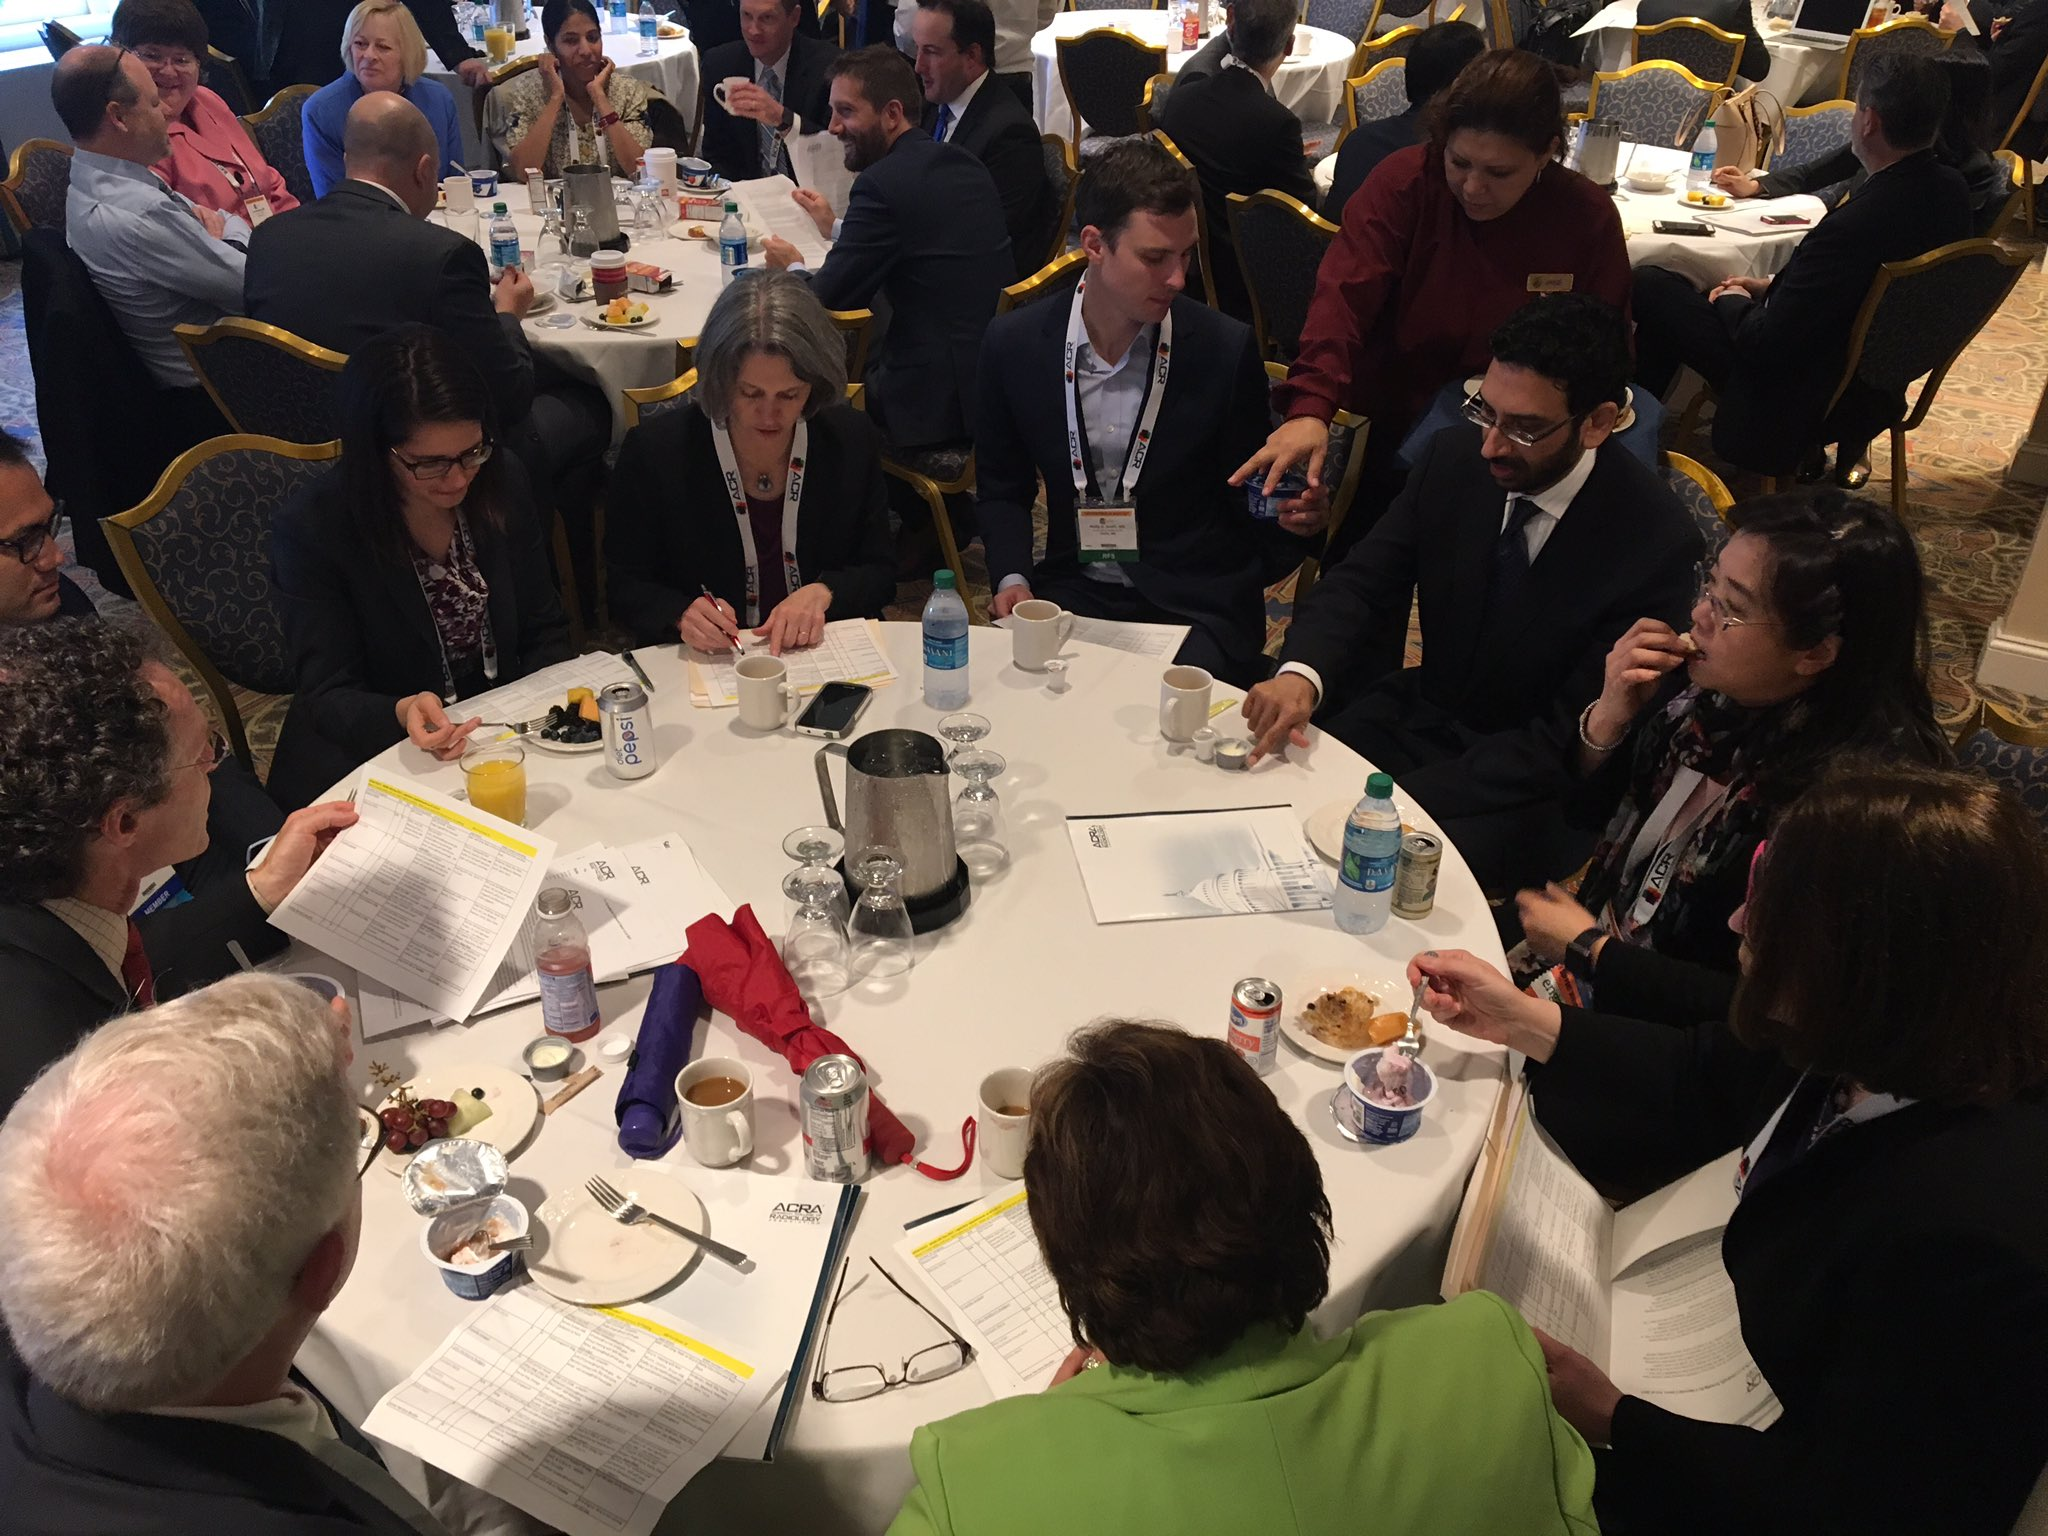 The WA State Radiological Society @RadiologyWSRS huddles before ACR hill day at the Capitol Hill Club @RadiologyACR #ACR2017 https://t.co/z9ejSbqBJP